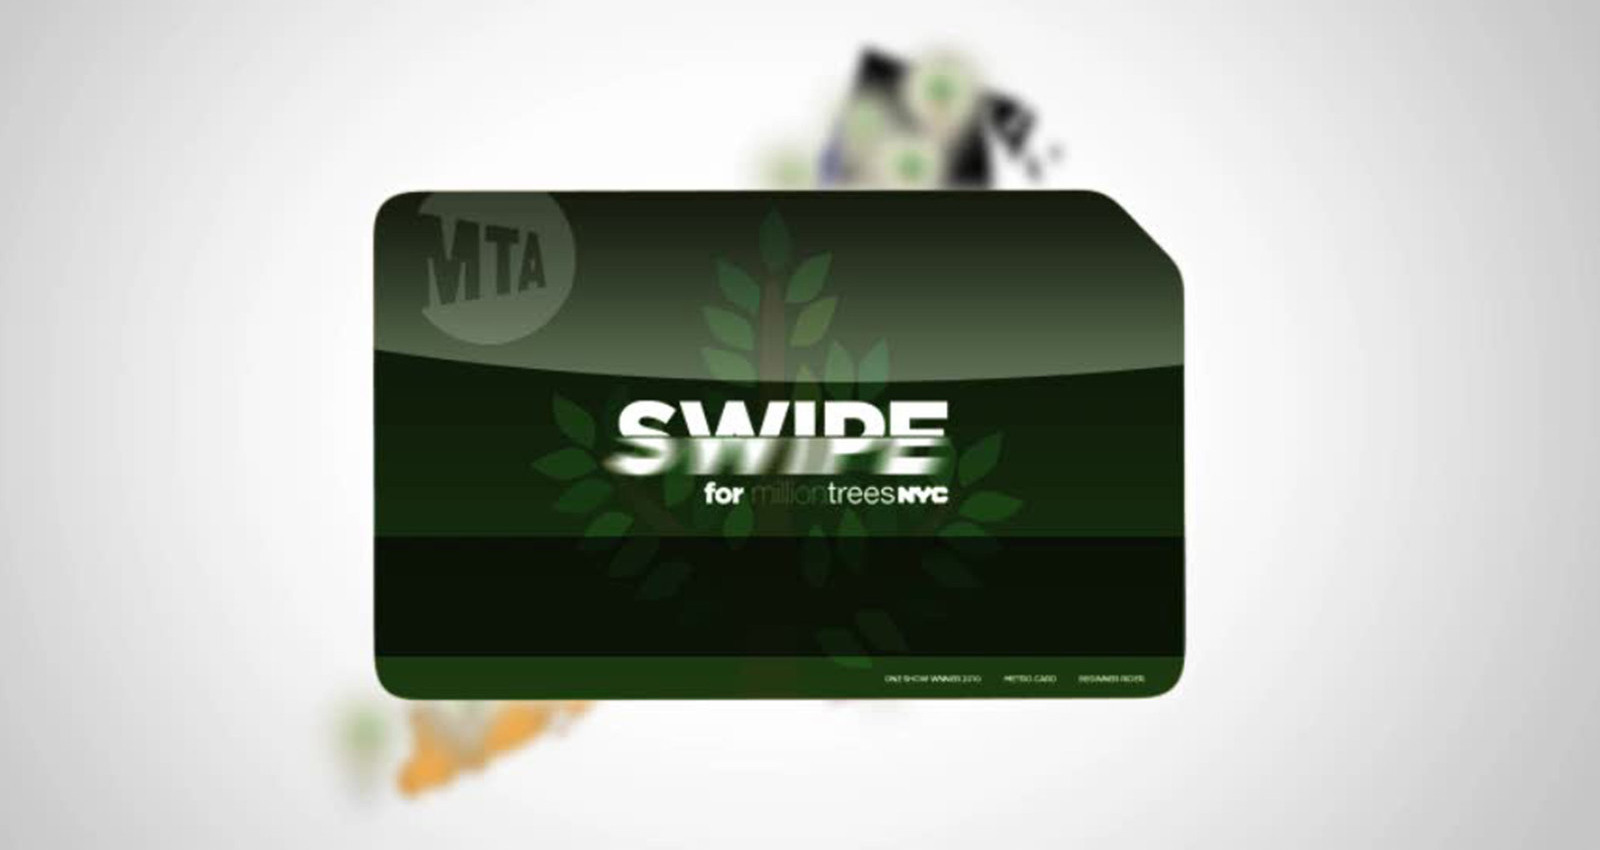 SWIPE for a Million Trees